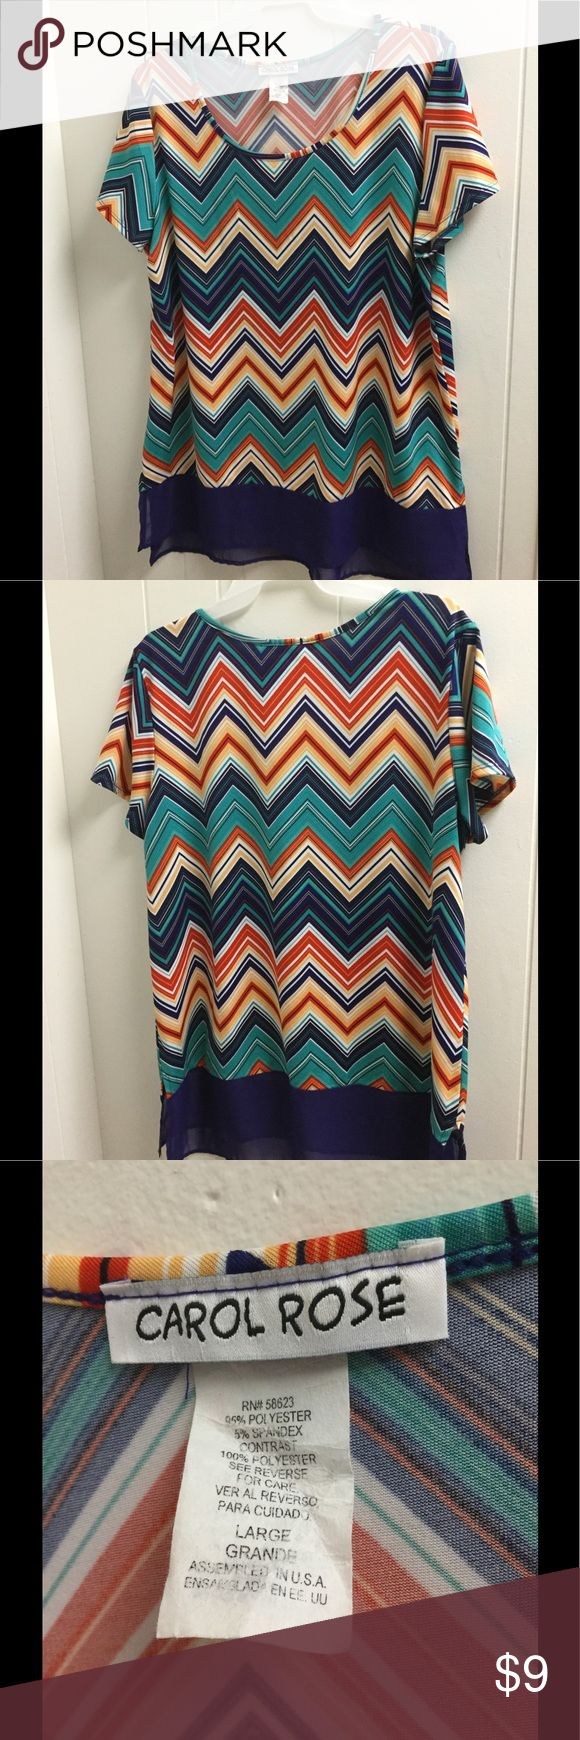 Carol Rose large top in mint condition. This colorful chevron top is flowy and lightweight. It is in top notch condition. It comes down a little longer than normal tops with the blue material at the bottom. Get this one today! I love it with white capris! Buy with confidence for clean, smoke free clothing. Thanks for looking! carol rose Tops Blouses